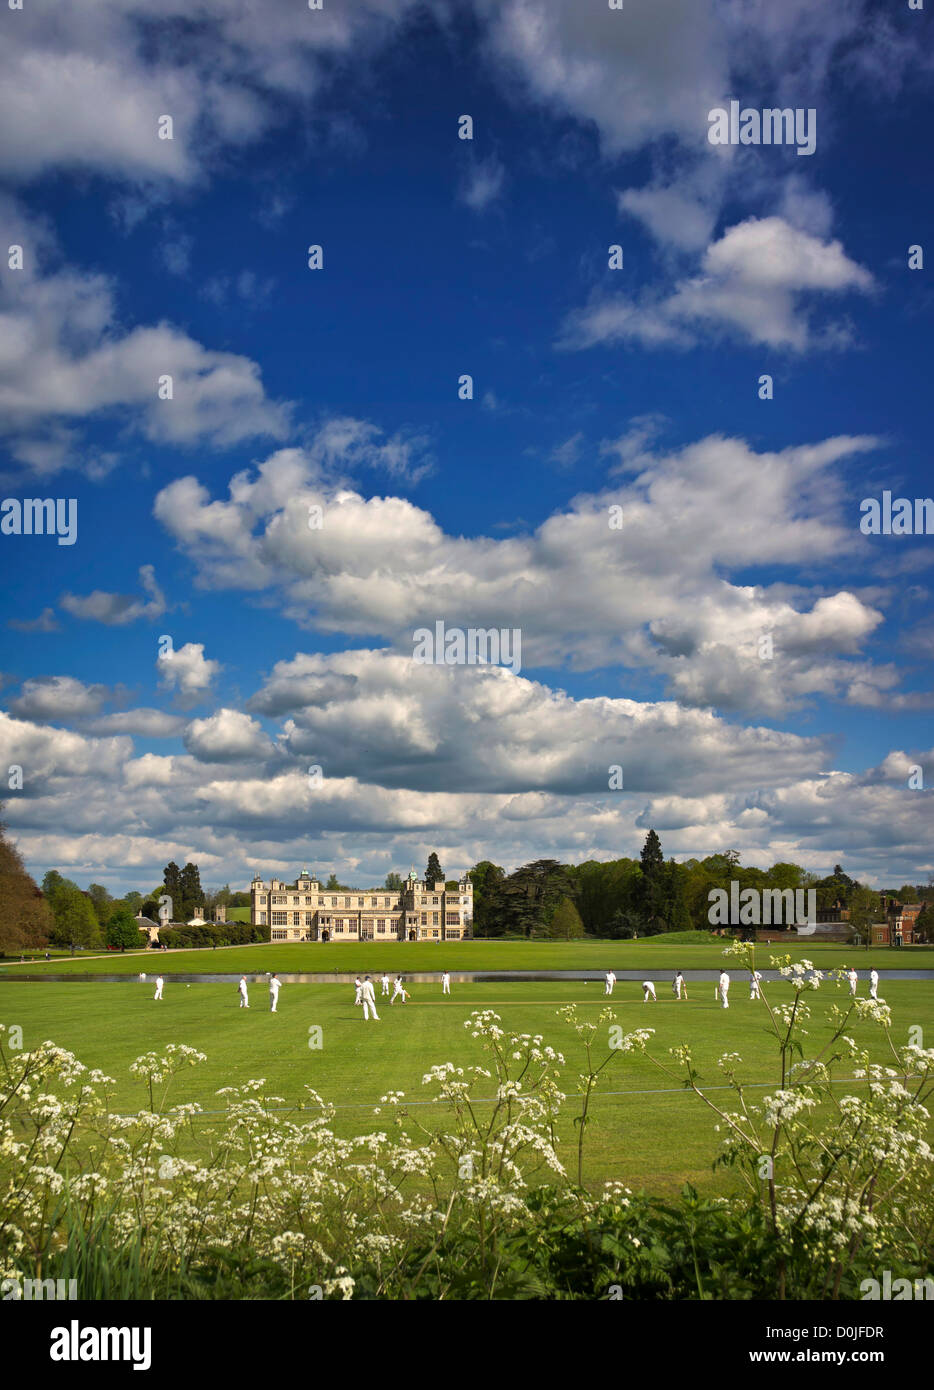 A cricket game being played in the grounds of Audley End. - Stock Image